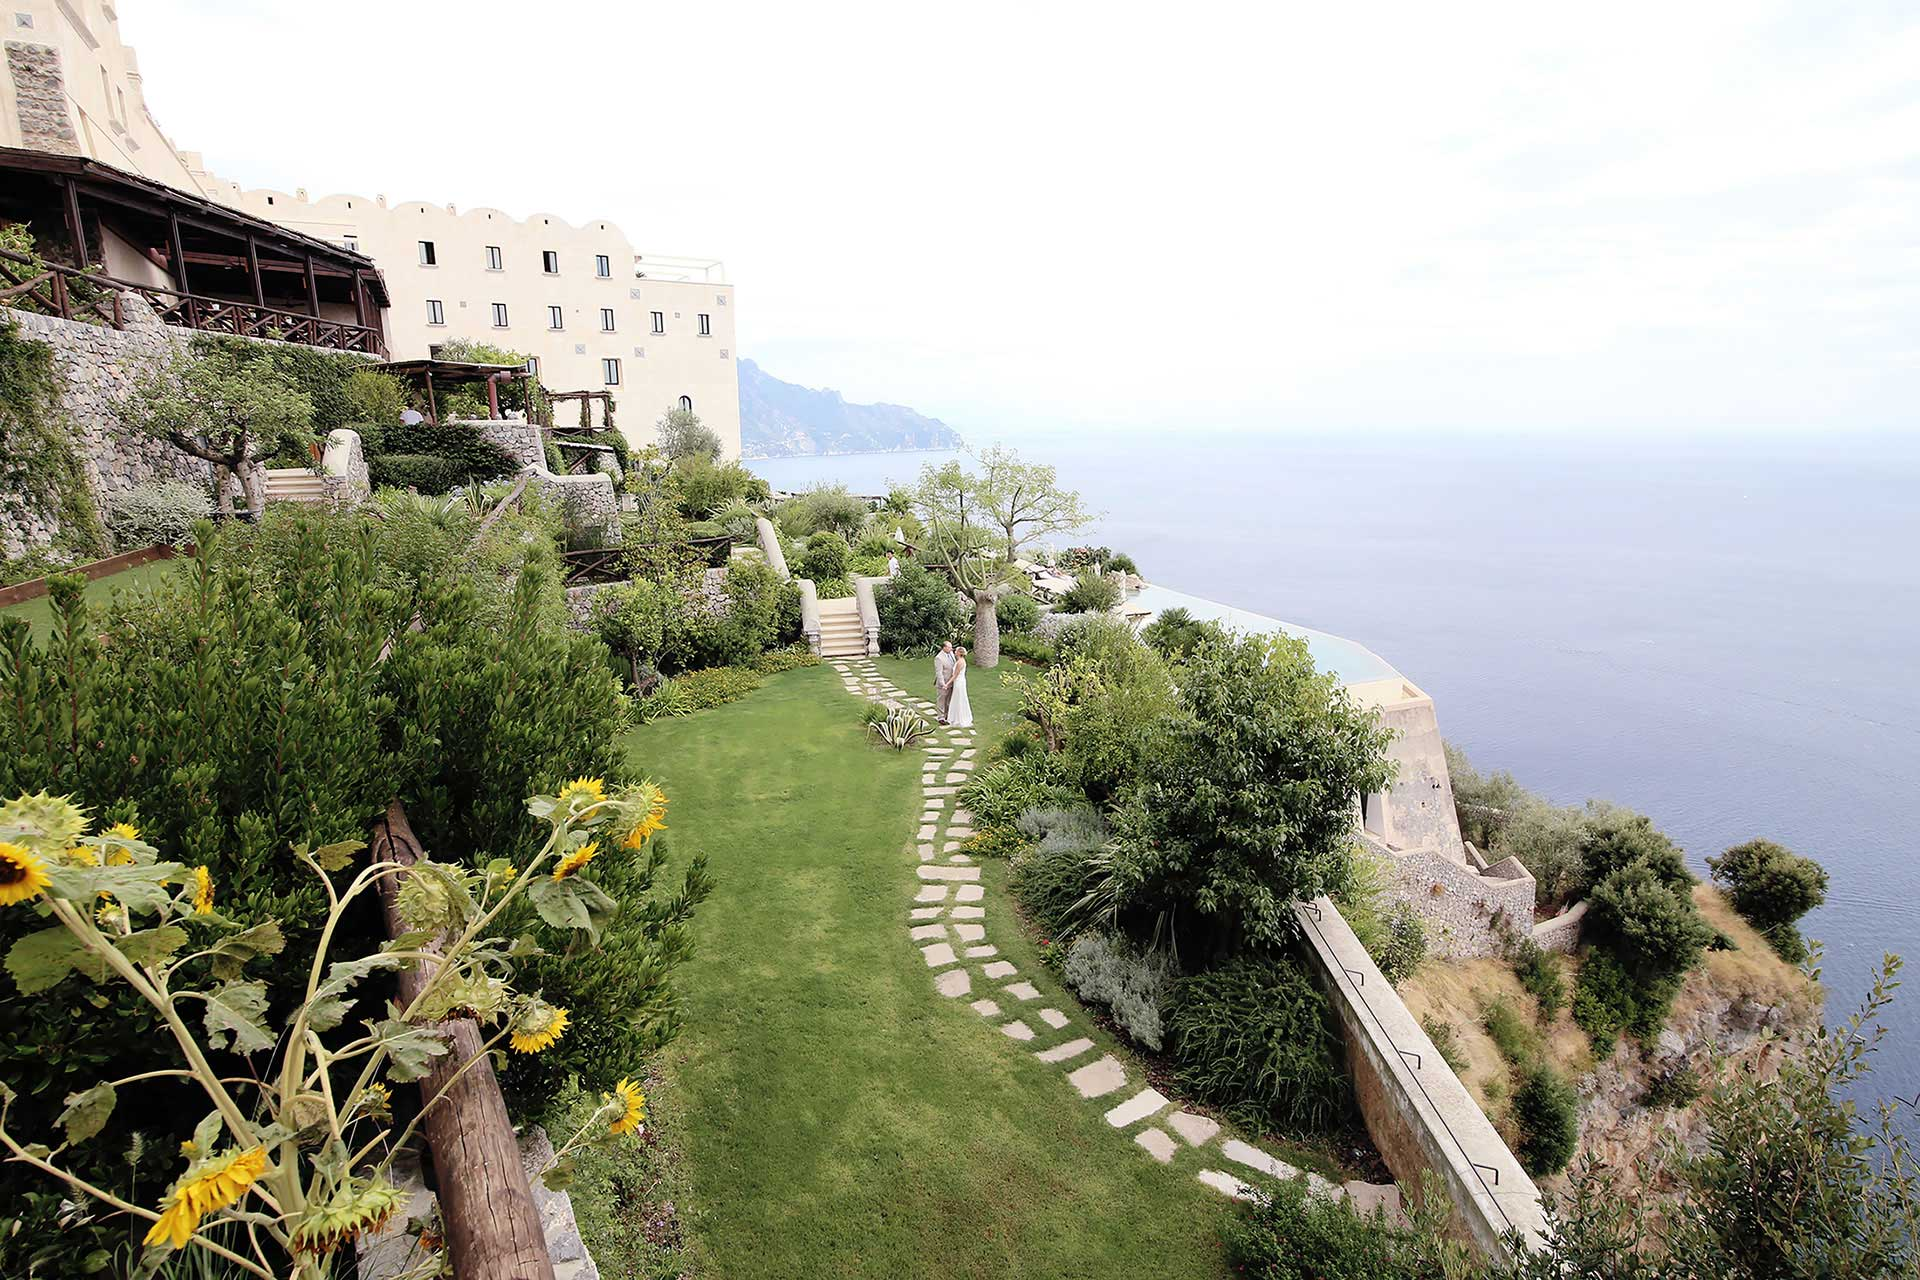 Hotel Monastero Santa Rosa the perfect location between art, culture and the Italian folk